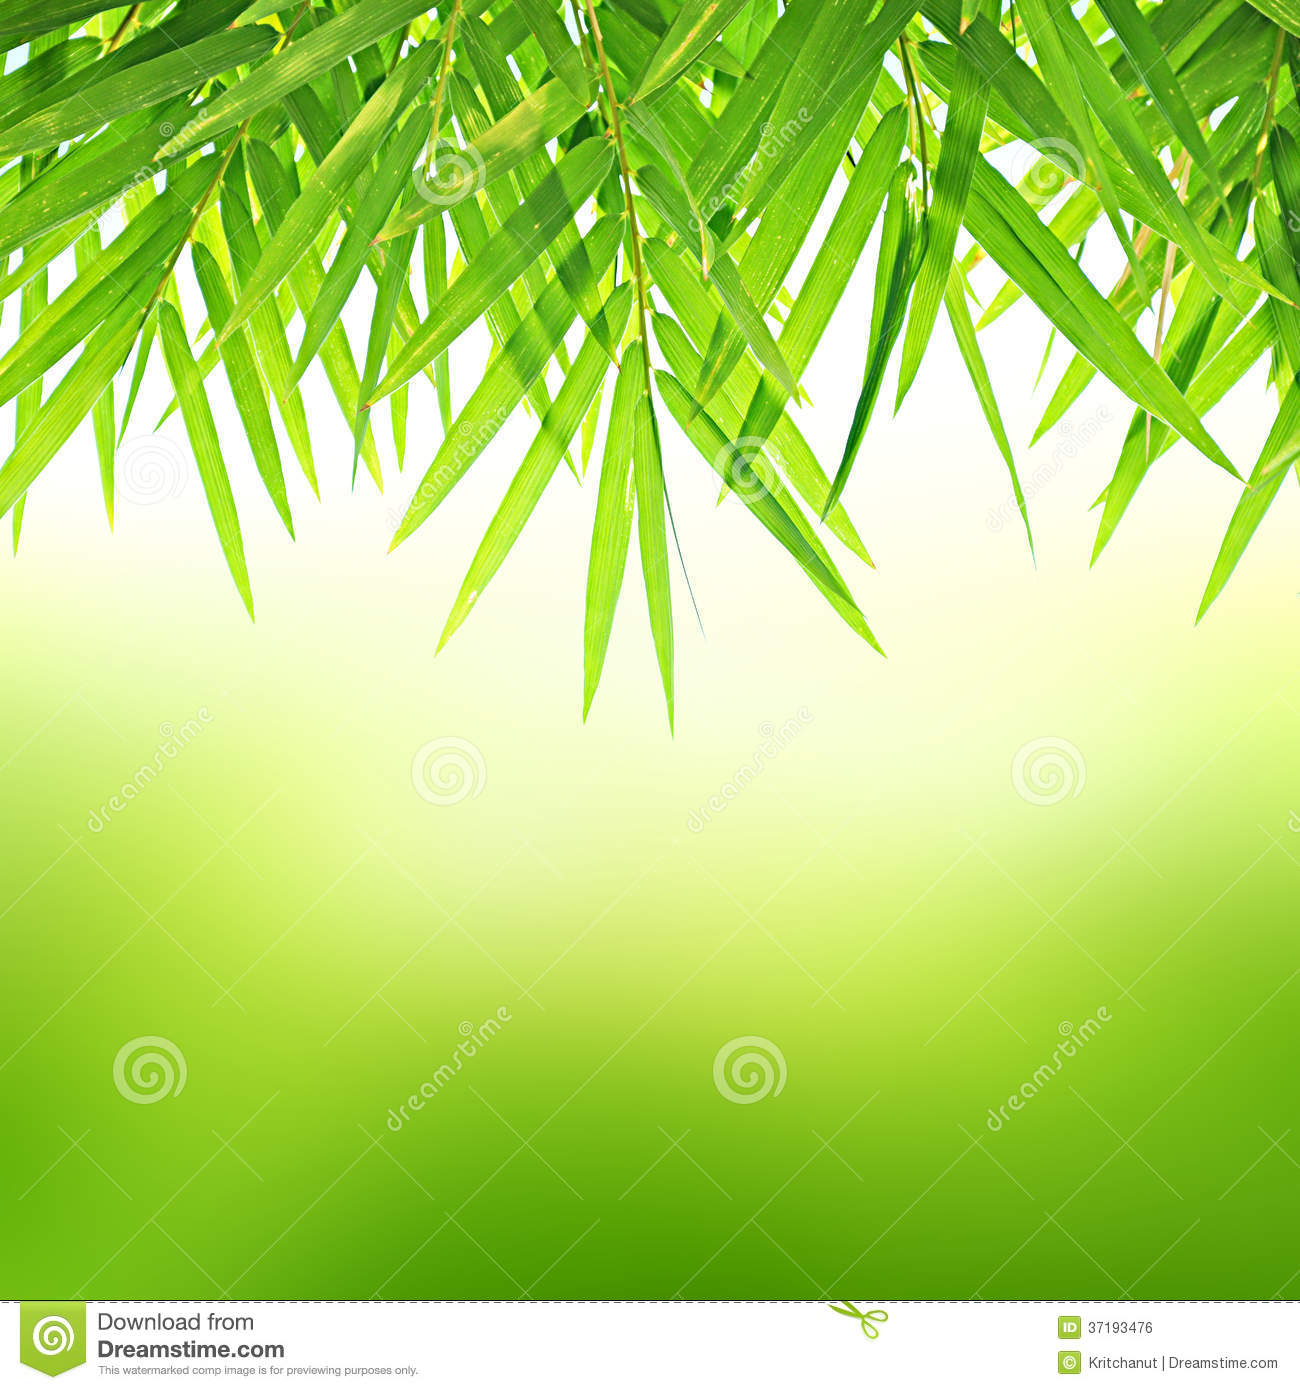 ��bamboo leaves on green background royalty free stock